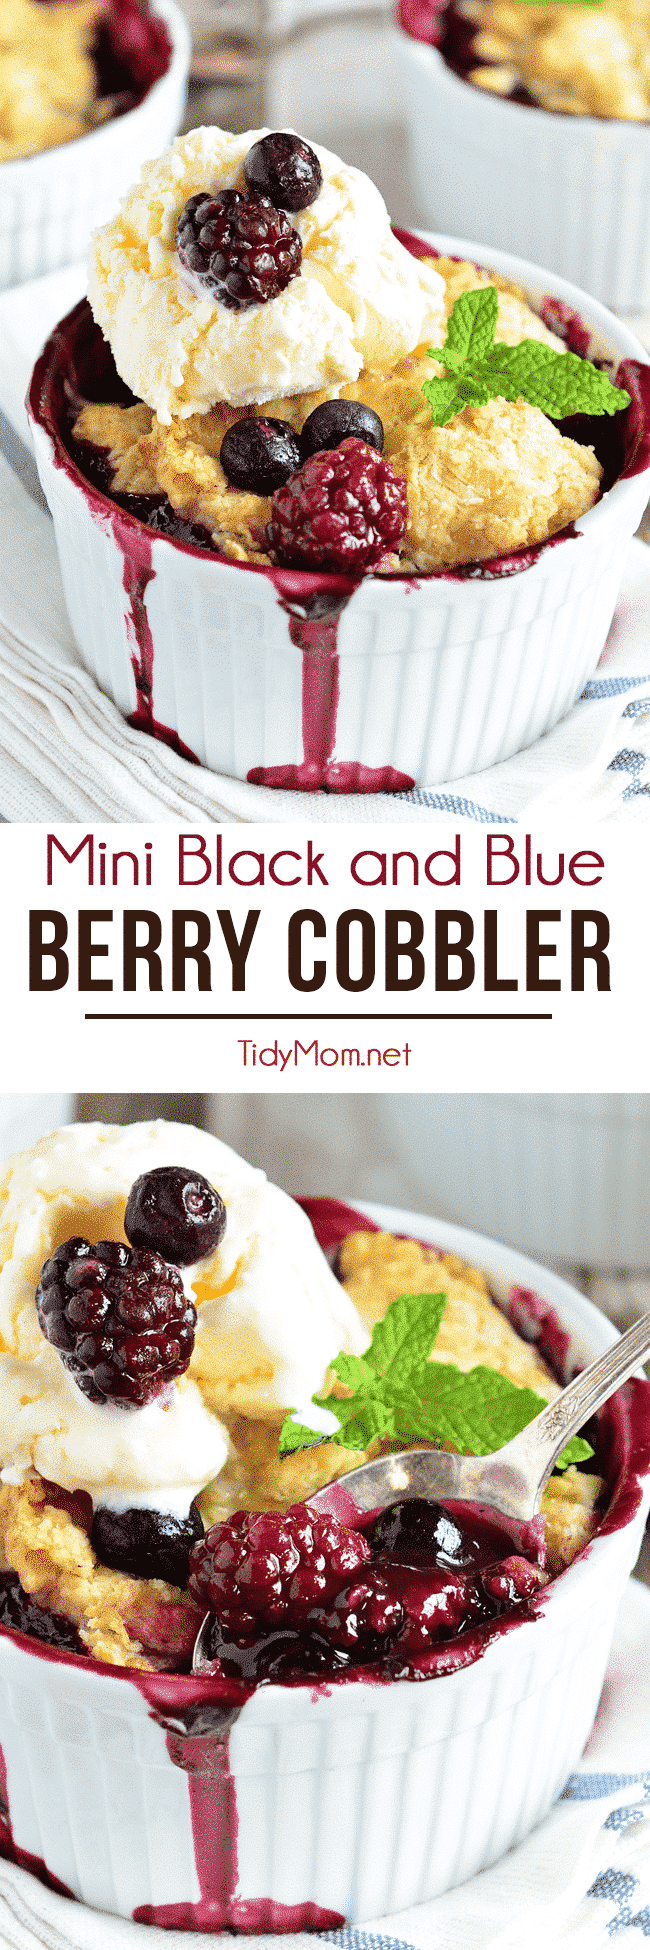 Mini Black and Blue Berry Cobbler recipe at TidyMom.net